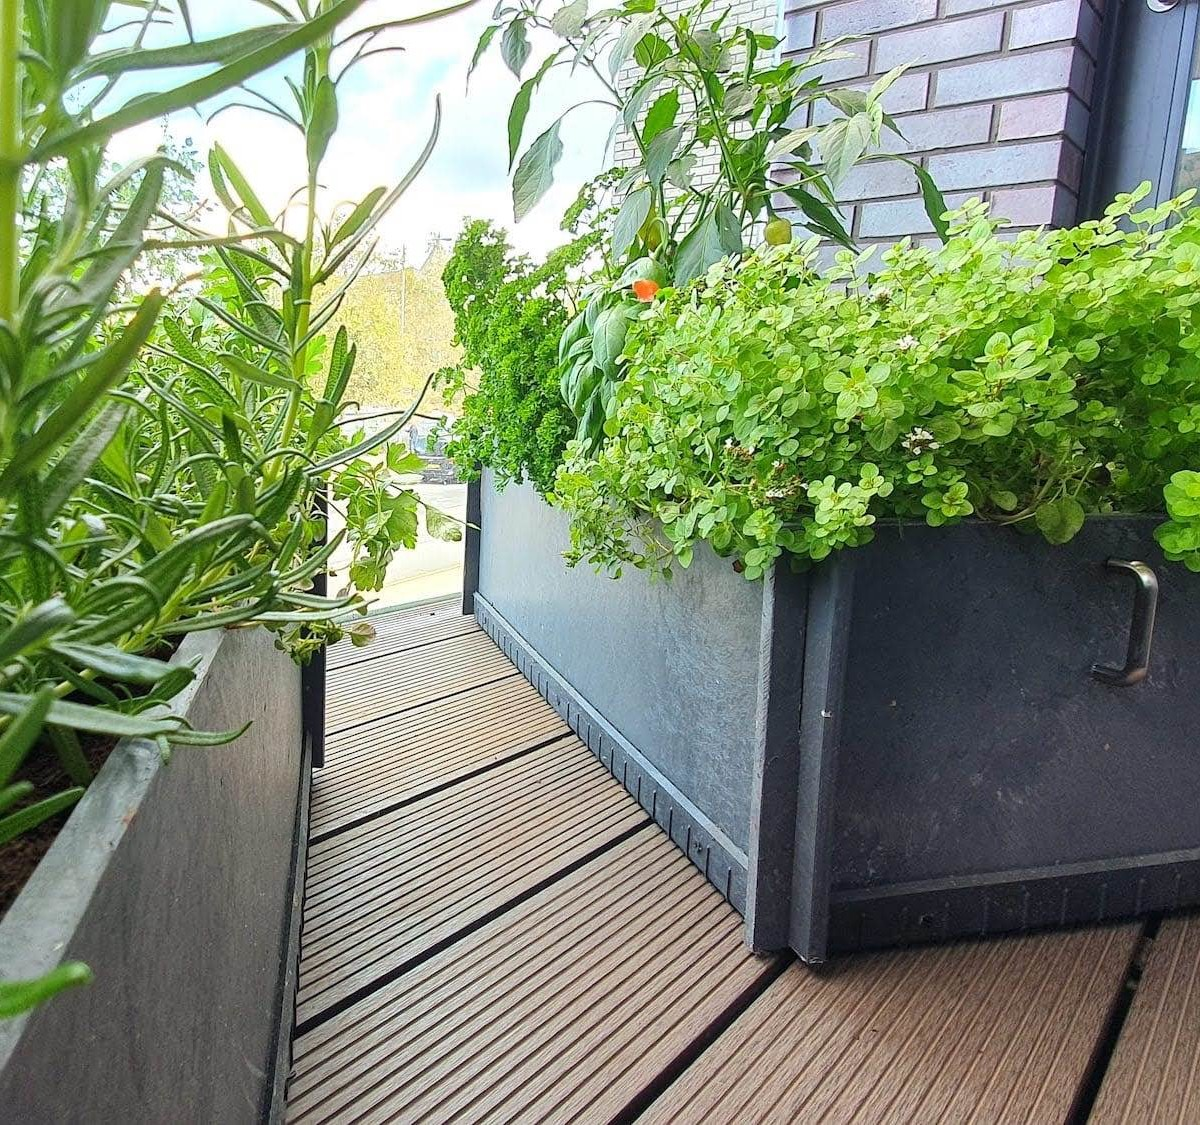 Practiplant portable eco raised beds are made of 100% recycled plastic waste